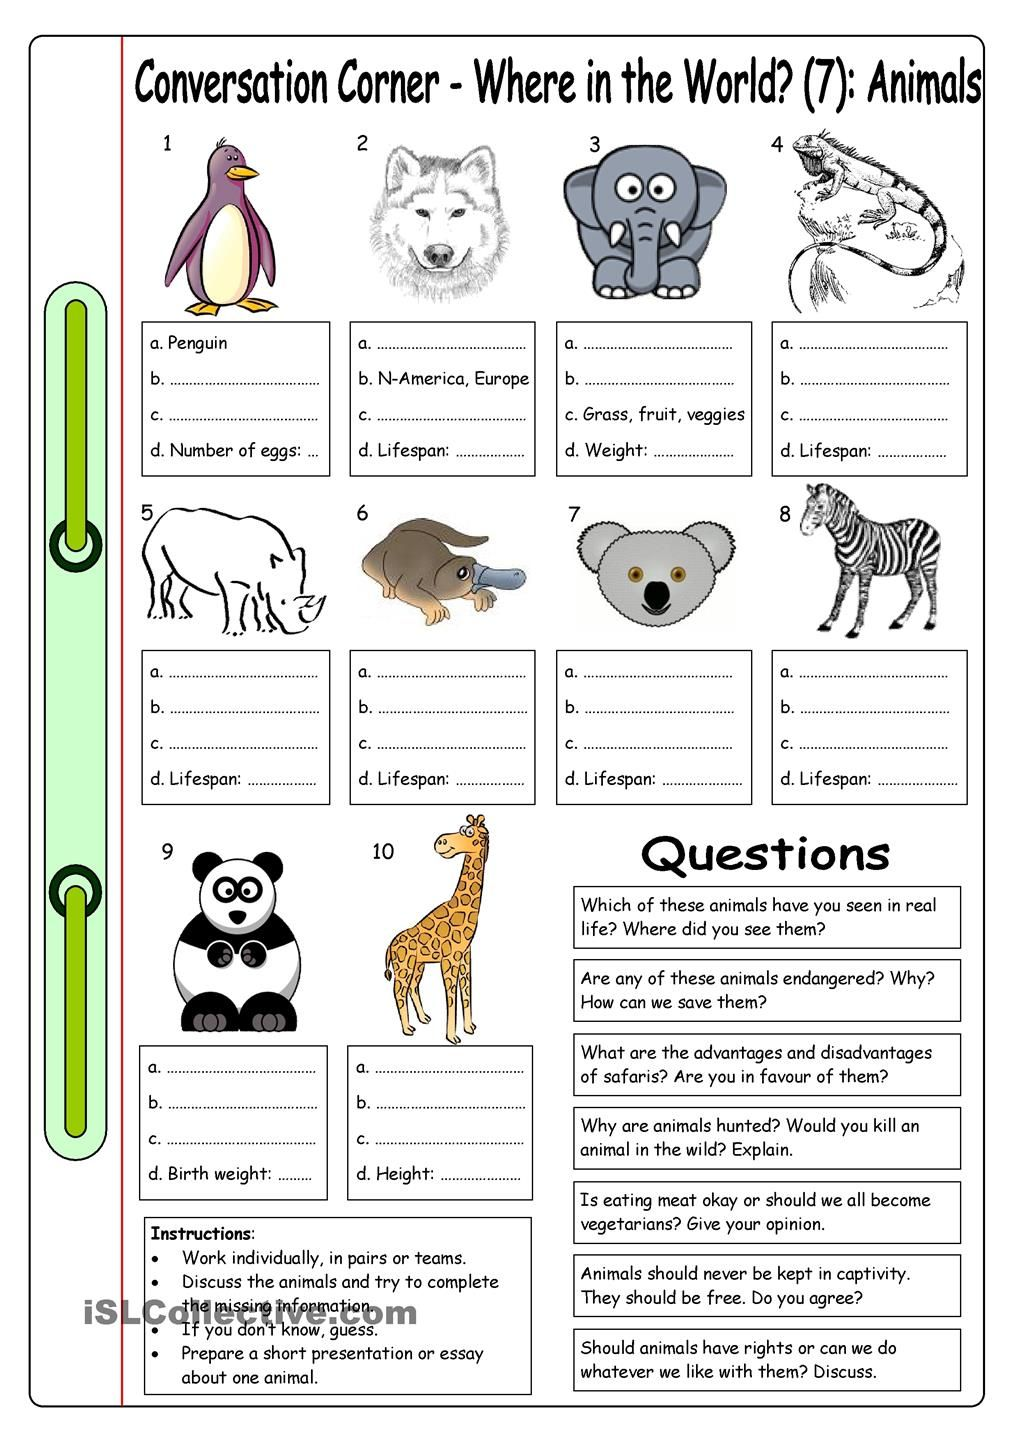 Worksheets Endangered Species Worksheets conversation corner where in the world 7 animals school this worksheet with 10 and questions can be used as a basis for an informal discussion about countri